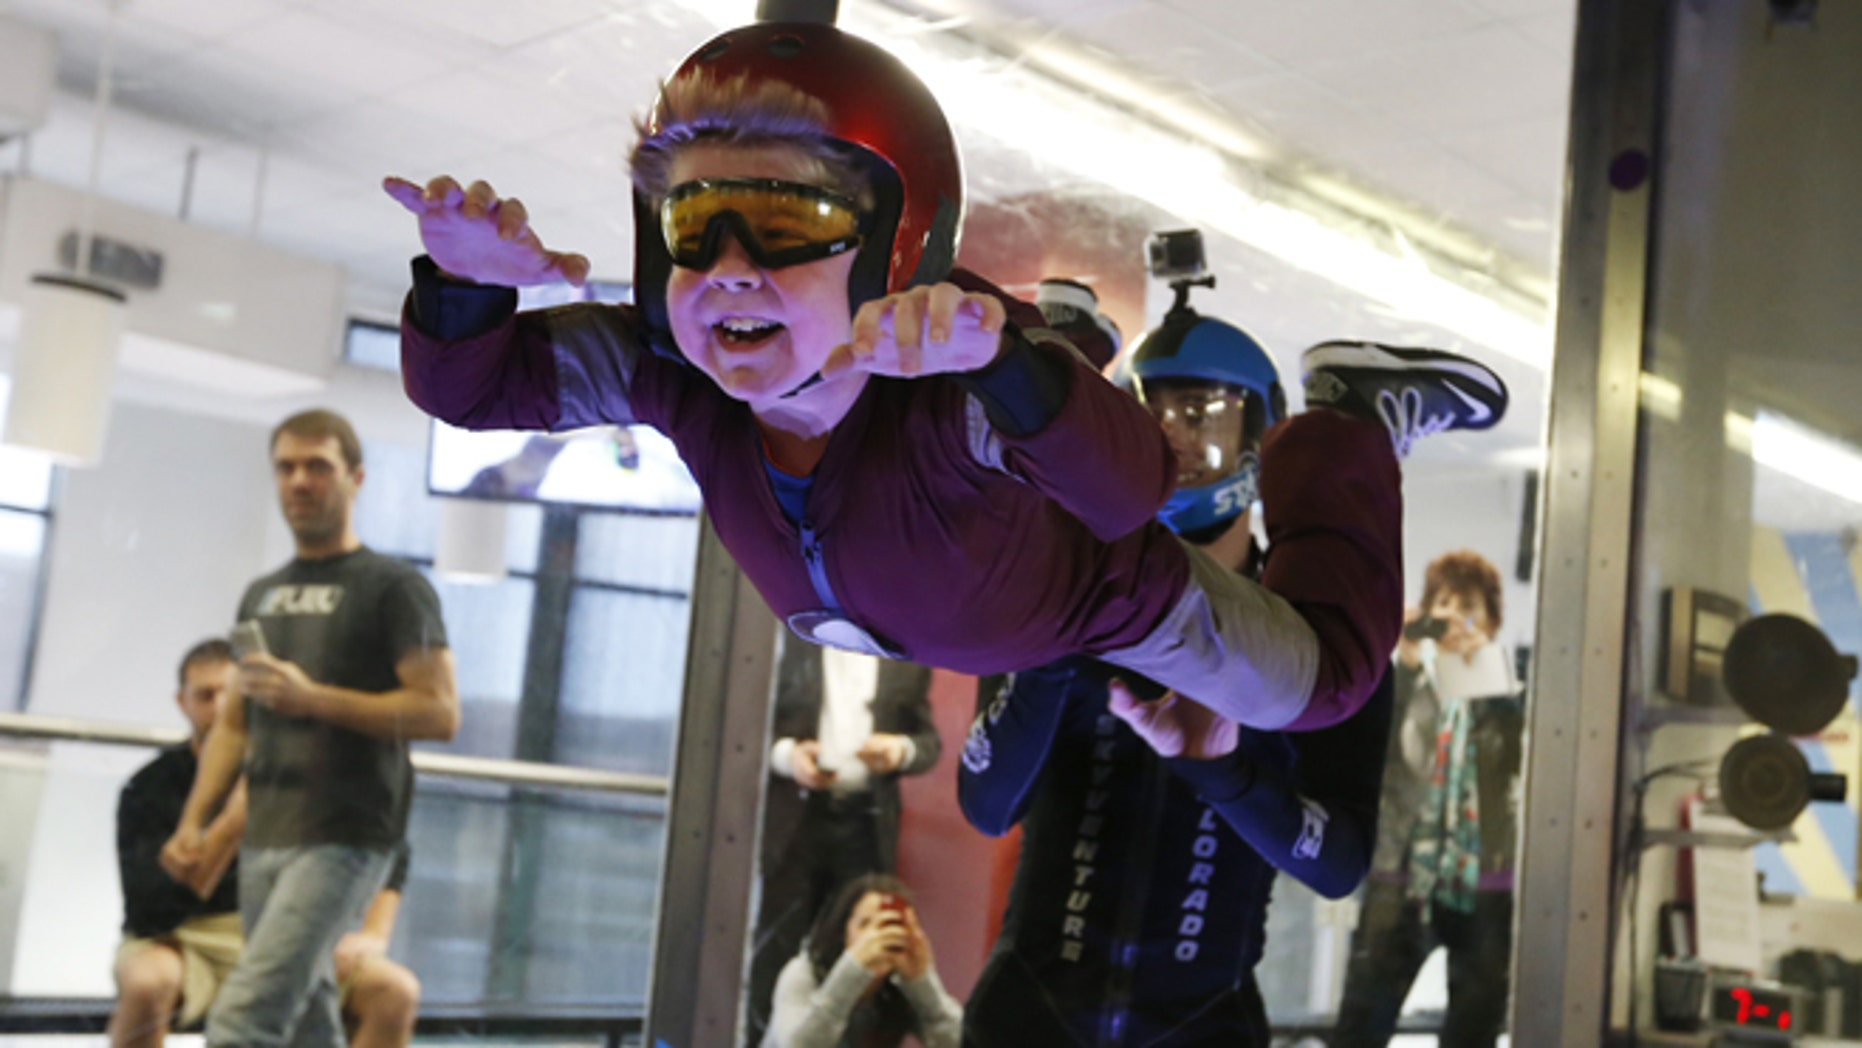 April 15: Wearing an Iron Man costume, Max Vertin, 7, from Hastings, Neb., floats in a wind tunnel simulating free fall during a day hosted by the Make-A-Wish Foundation at SkyVenture Colorado in Lone Tree, Colo.